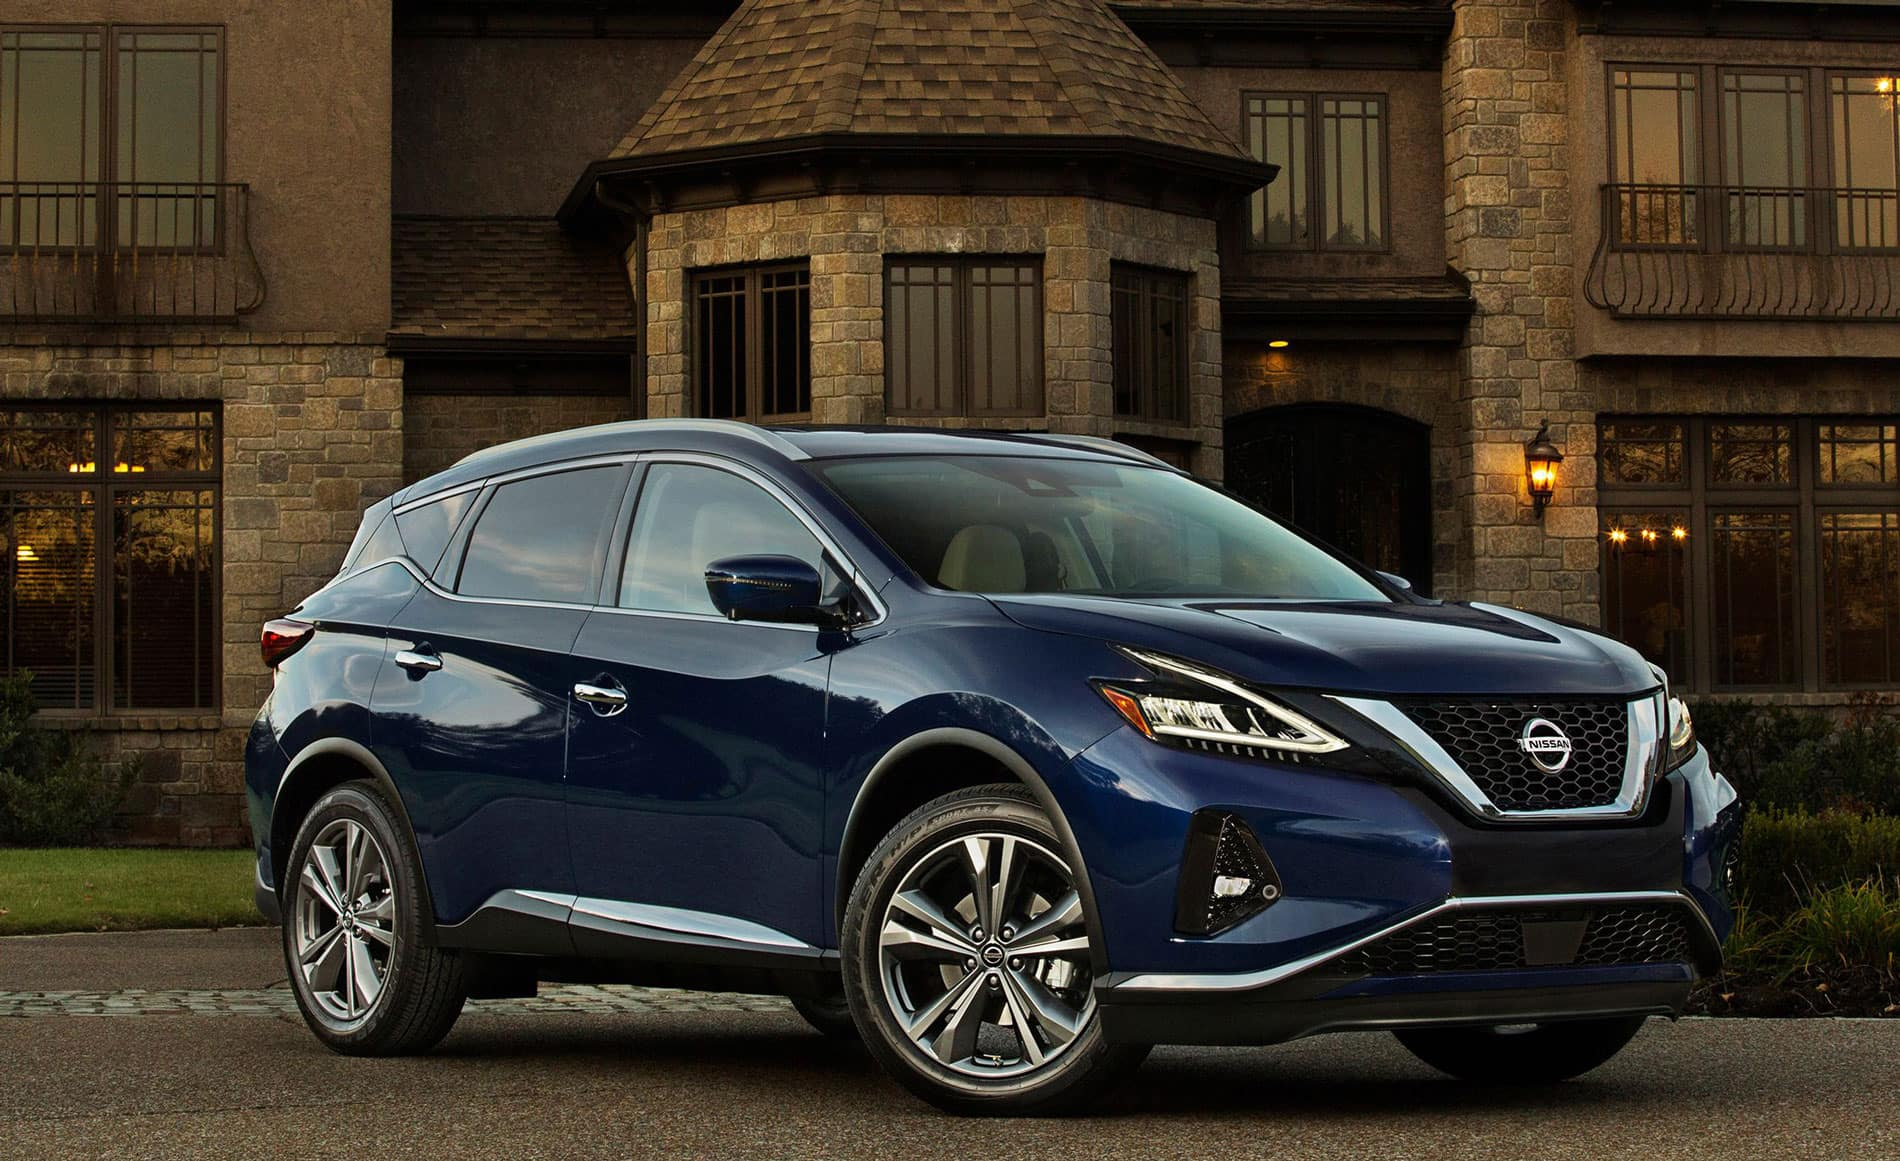 2019 Nissan Murano Gets a Facelift and New Safety Gear